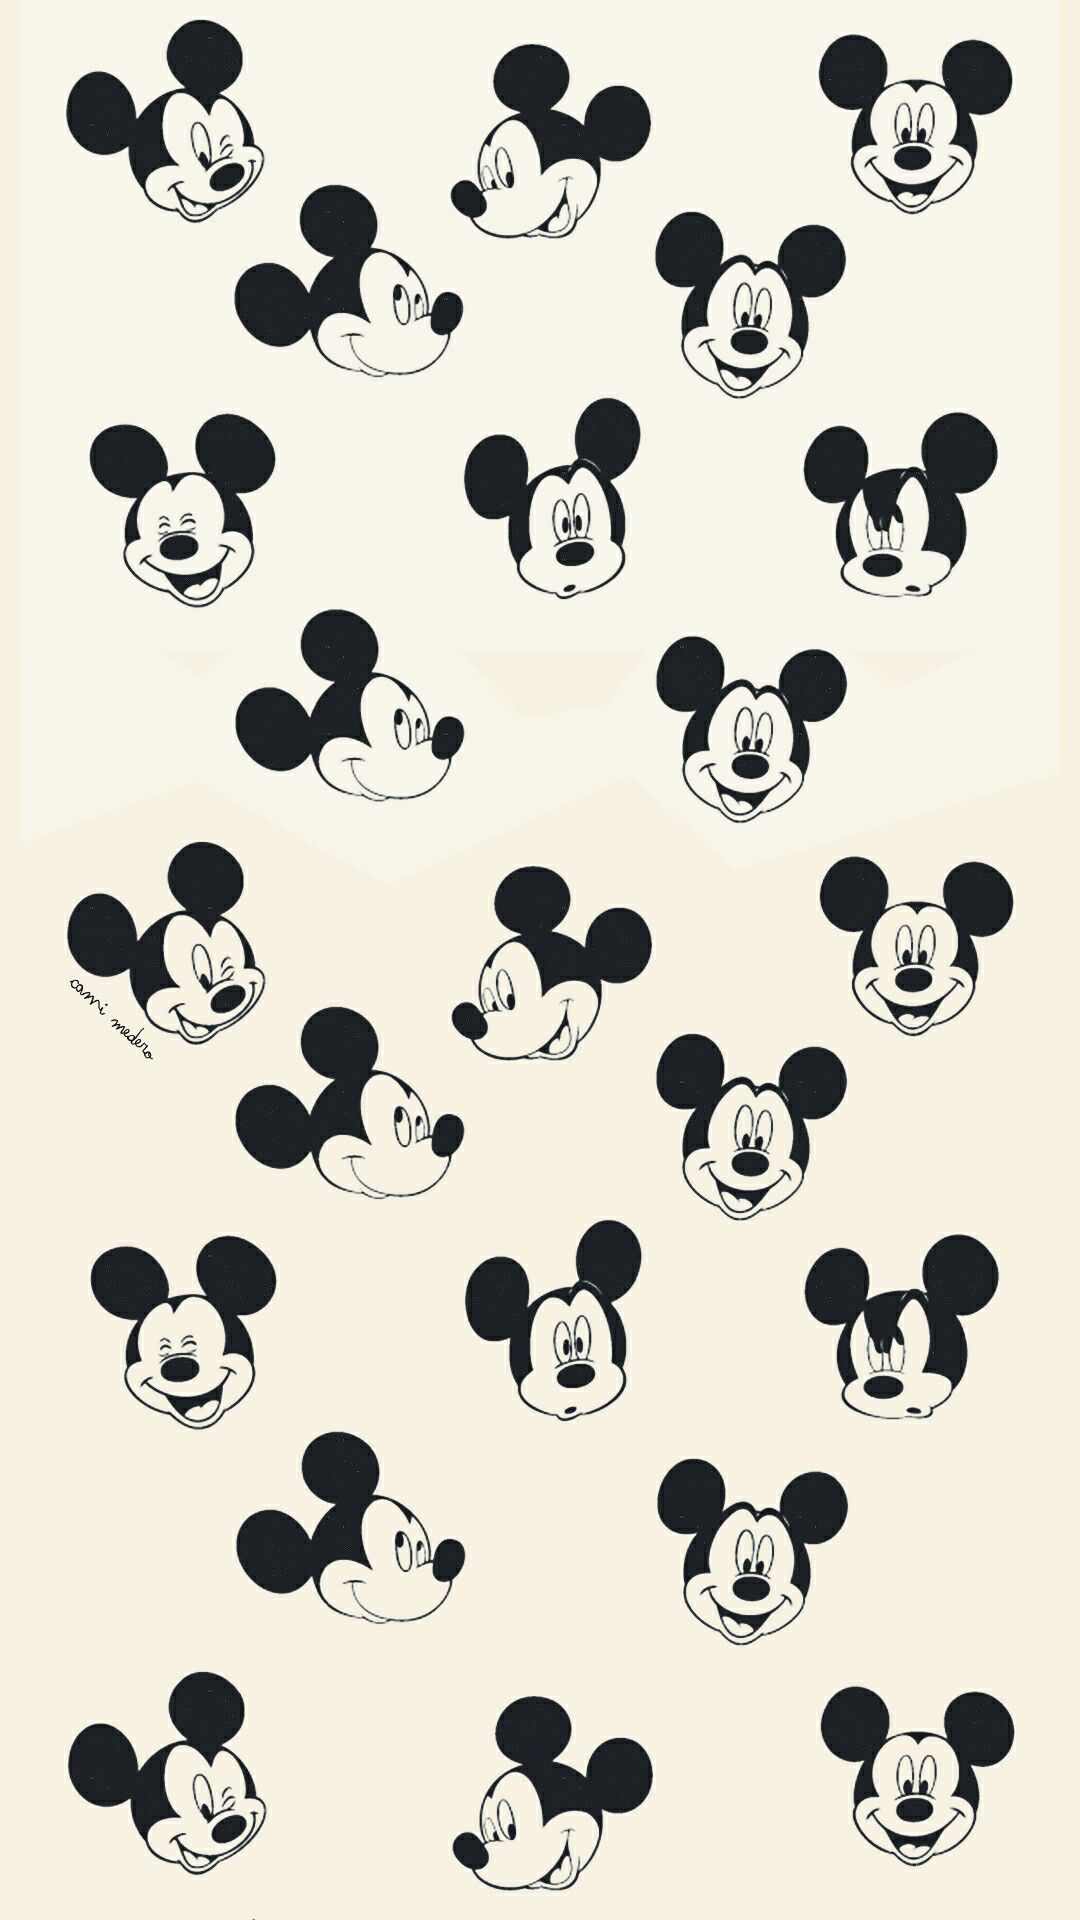 Pin By Twilla On Girly Wallpapers Pinterest Mickey Mouse